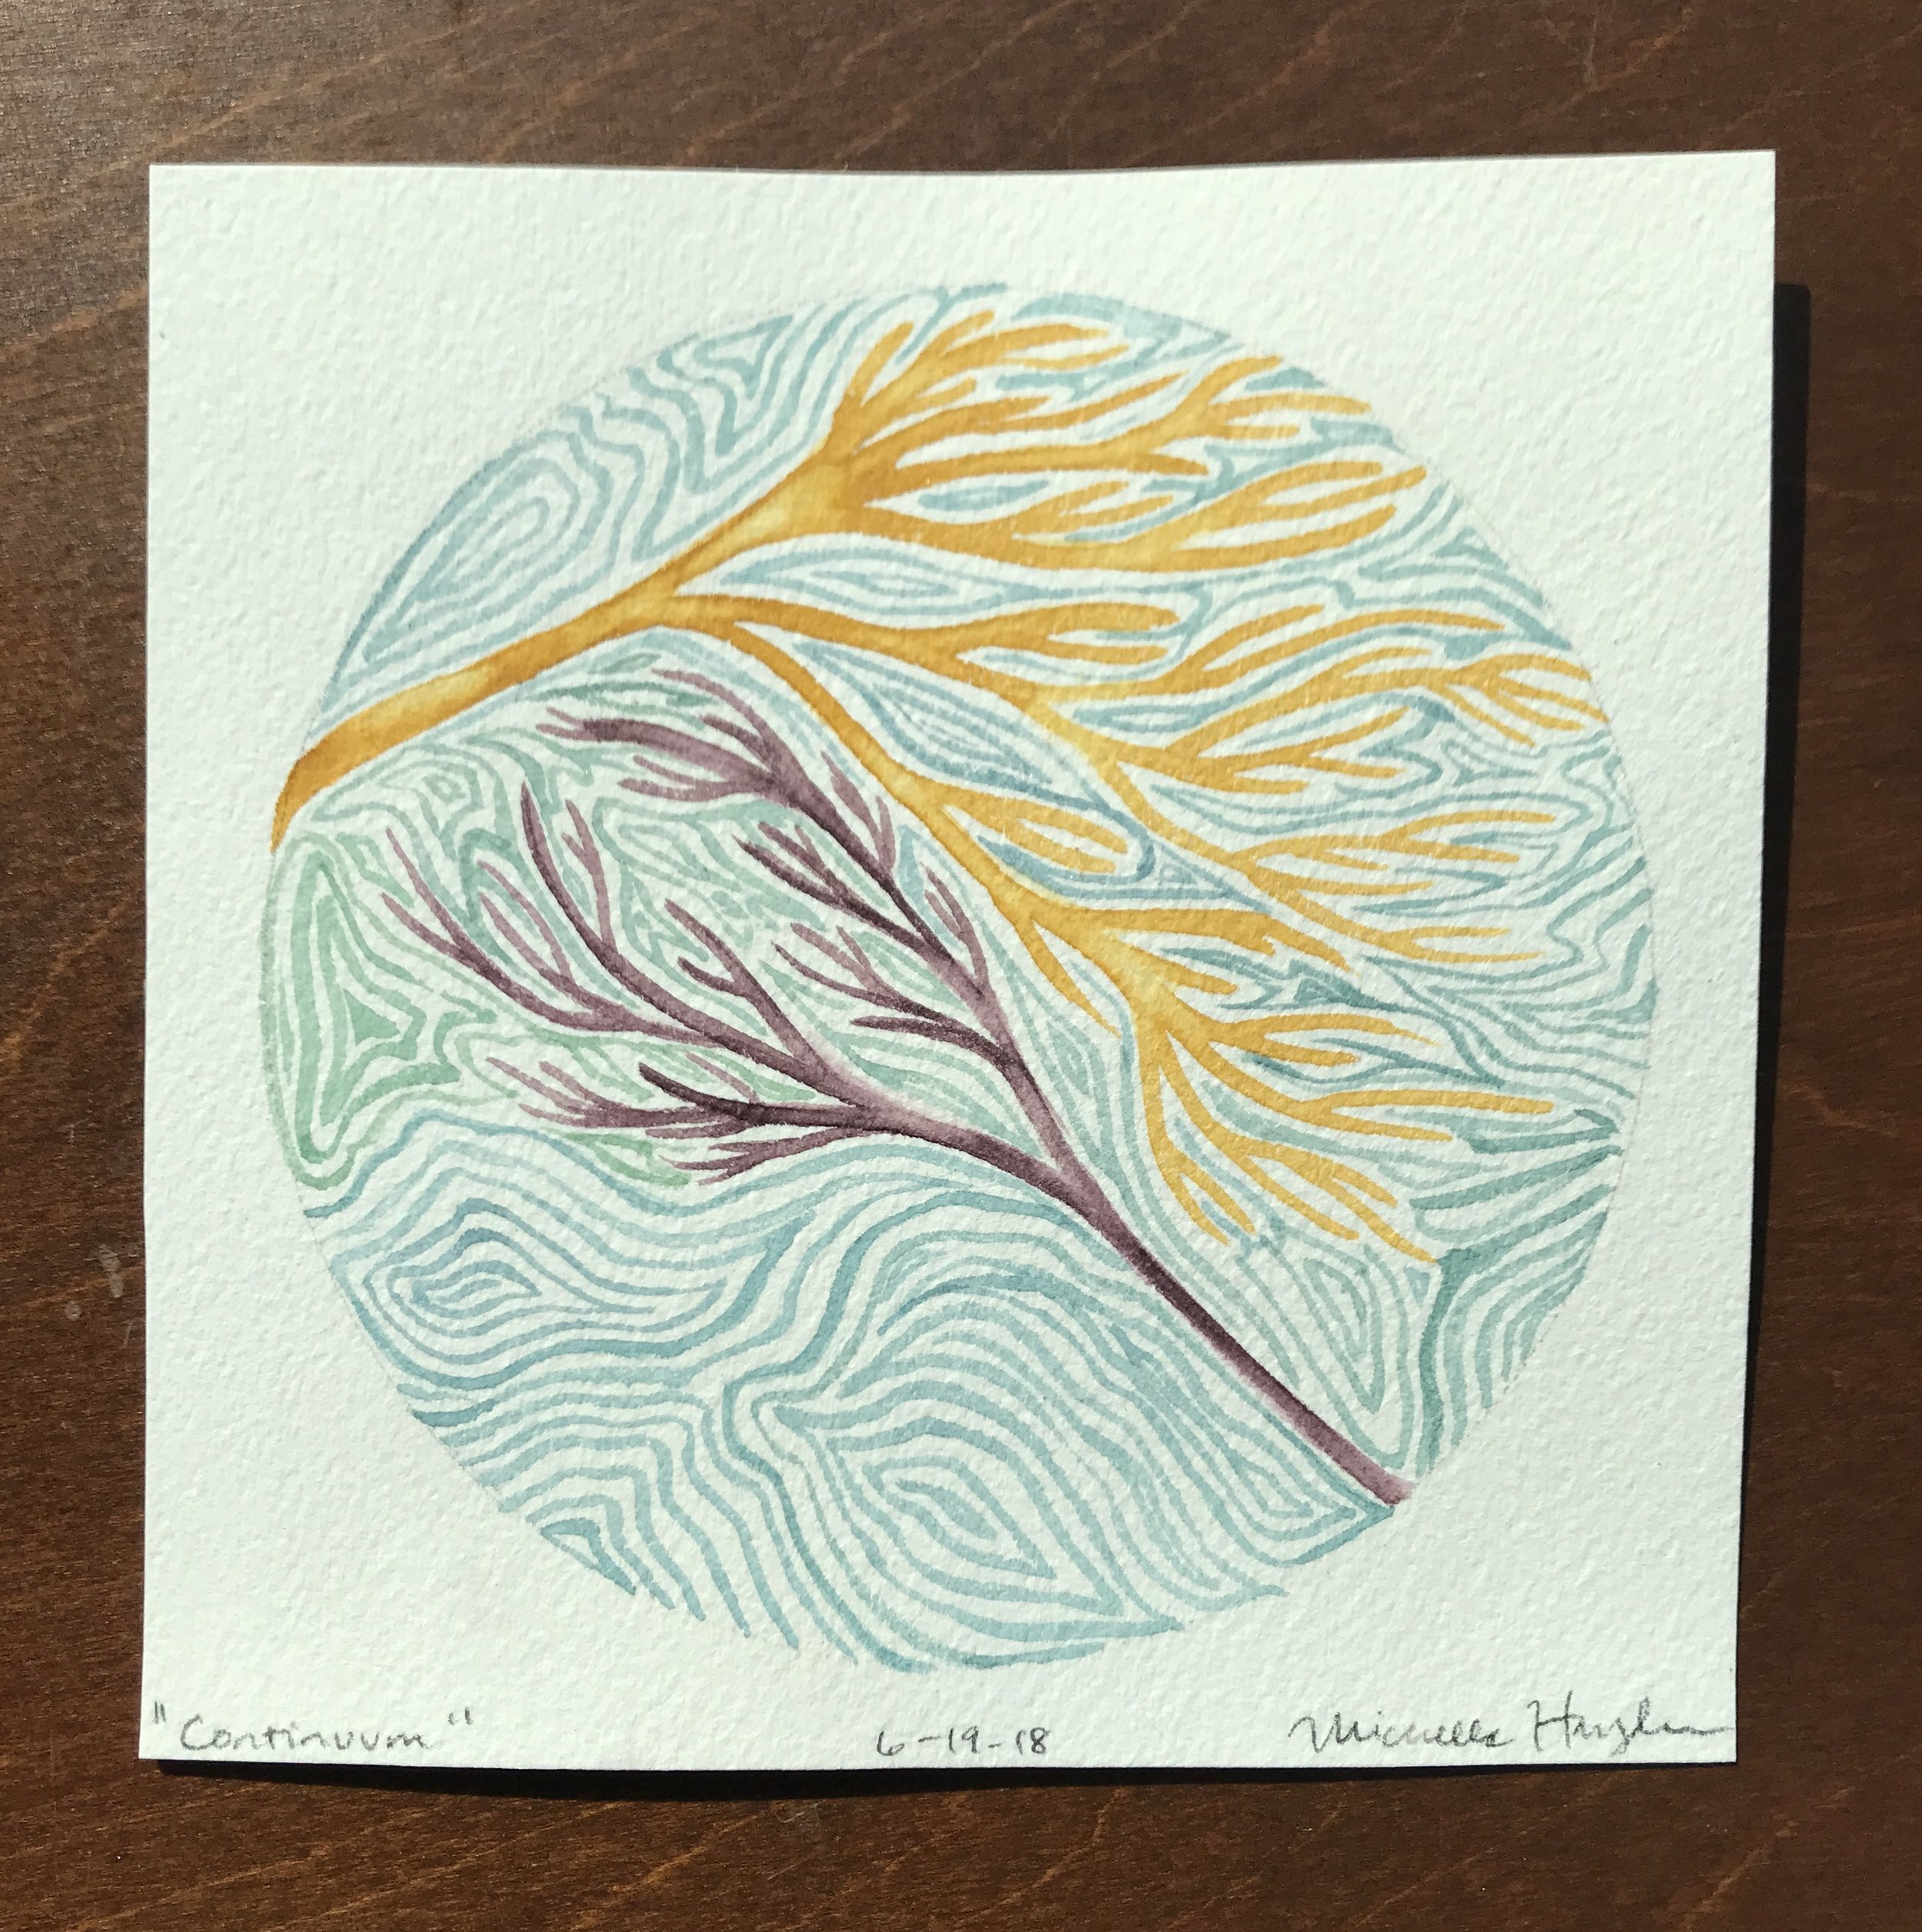 """(""""As I paint while driving (spouse) along the highway to return home (which is an interesting challenge on these bumpy curvy roads), my mind is preoccupied with shapes of specimens found along sandy shores, remnants of living beings pulled forth from the ocean's depths. Having seen and touched variations of live branches and brightly colored coral as well as those fossilized, my thoughts return to coral fragments we have discovered on our hillsides in Kentucky. Basic research reveals that the age of this KY coral is hundreds of million of years old, which is difficult to comprehend... even more so is imagining our land being under ocean water. It leaves me pondering the profound experience of being alive during a mere moment in a long progression of time, mindful yet again of the imprint we have the opportunity to leave..."""")"""